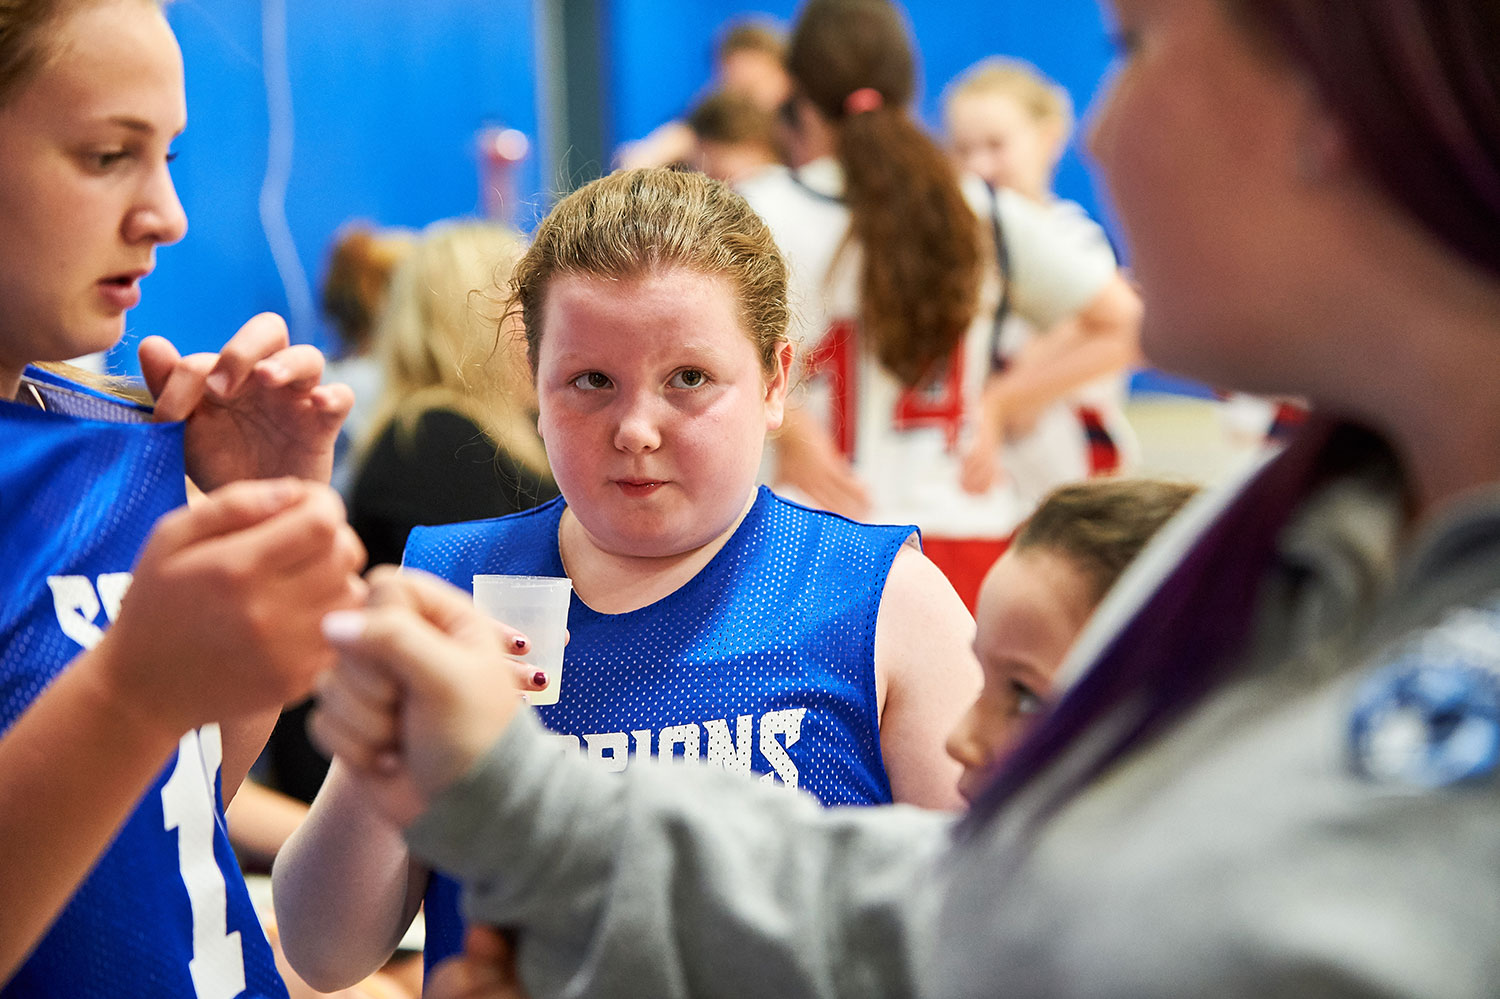 Alyssa Temkin, 11, takes a break during a basketball game